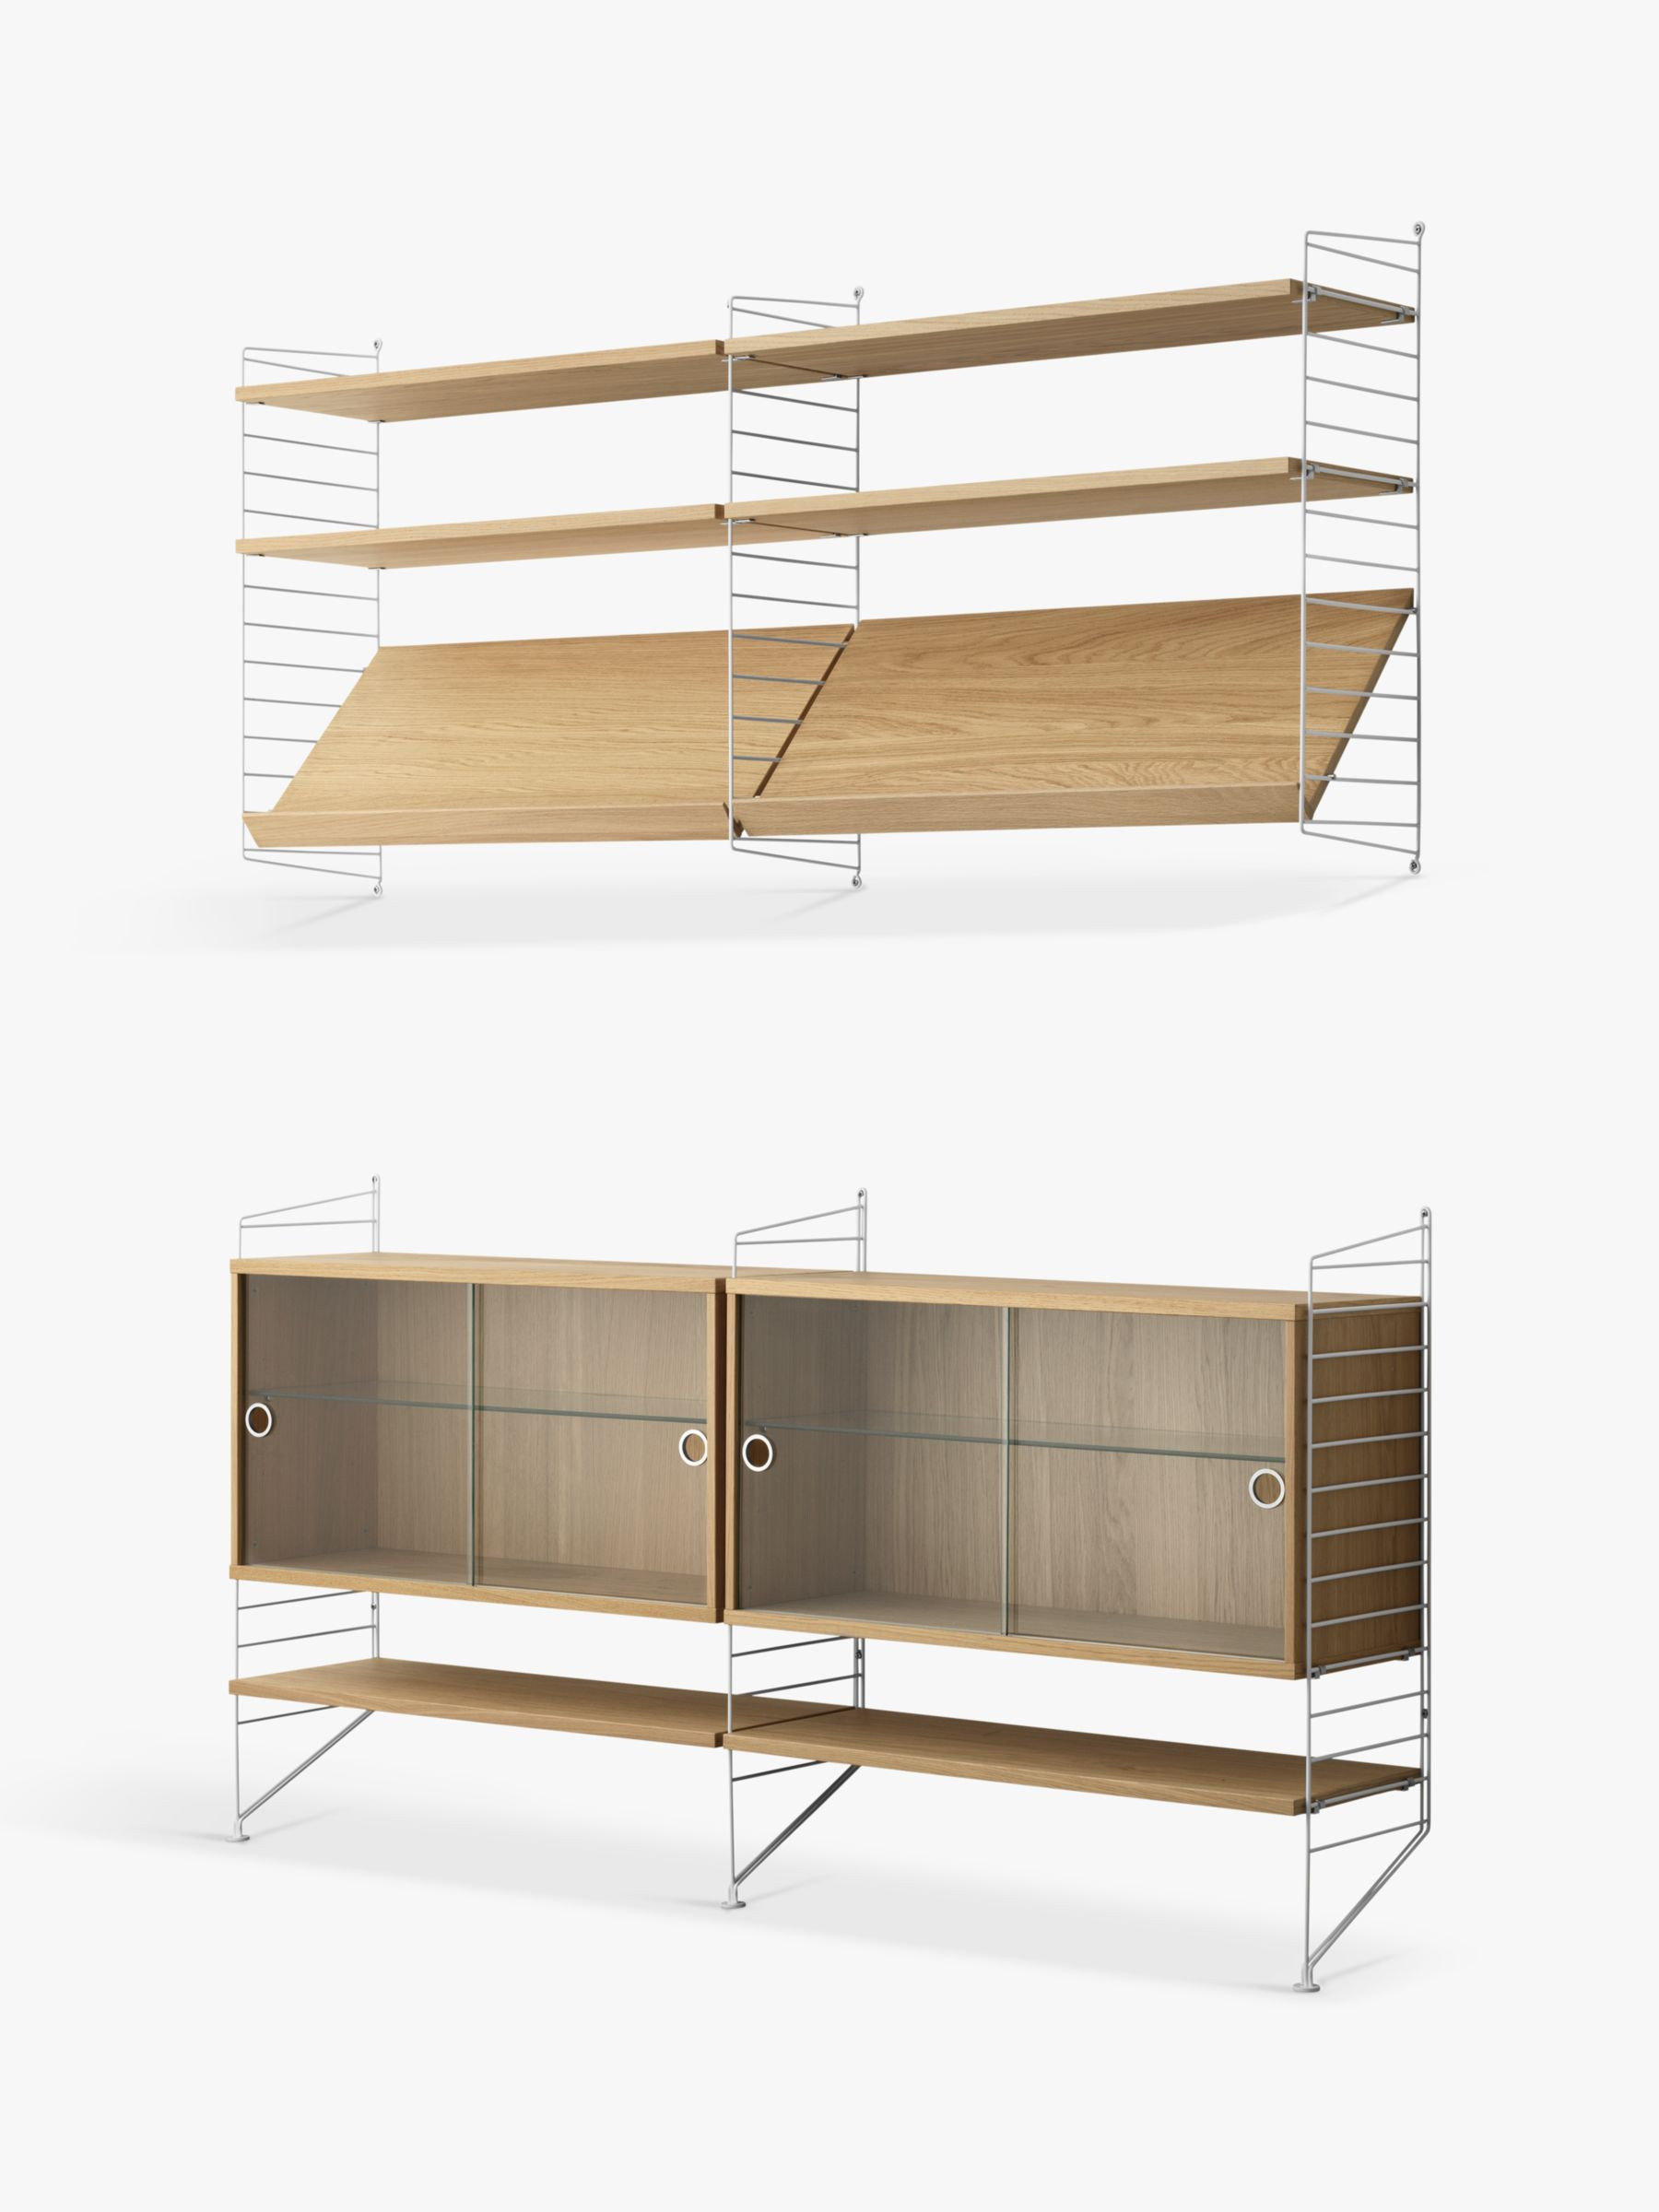 Glass Door Cabinet Elegant String Pair Of Shelving Units with Double Glass Door Cabinets Shelves and Wall Fastened Side Racks Oak White